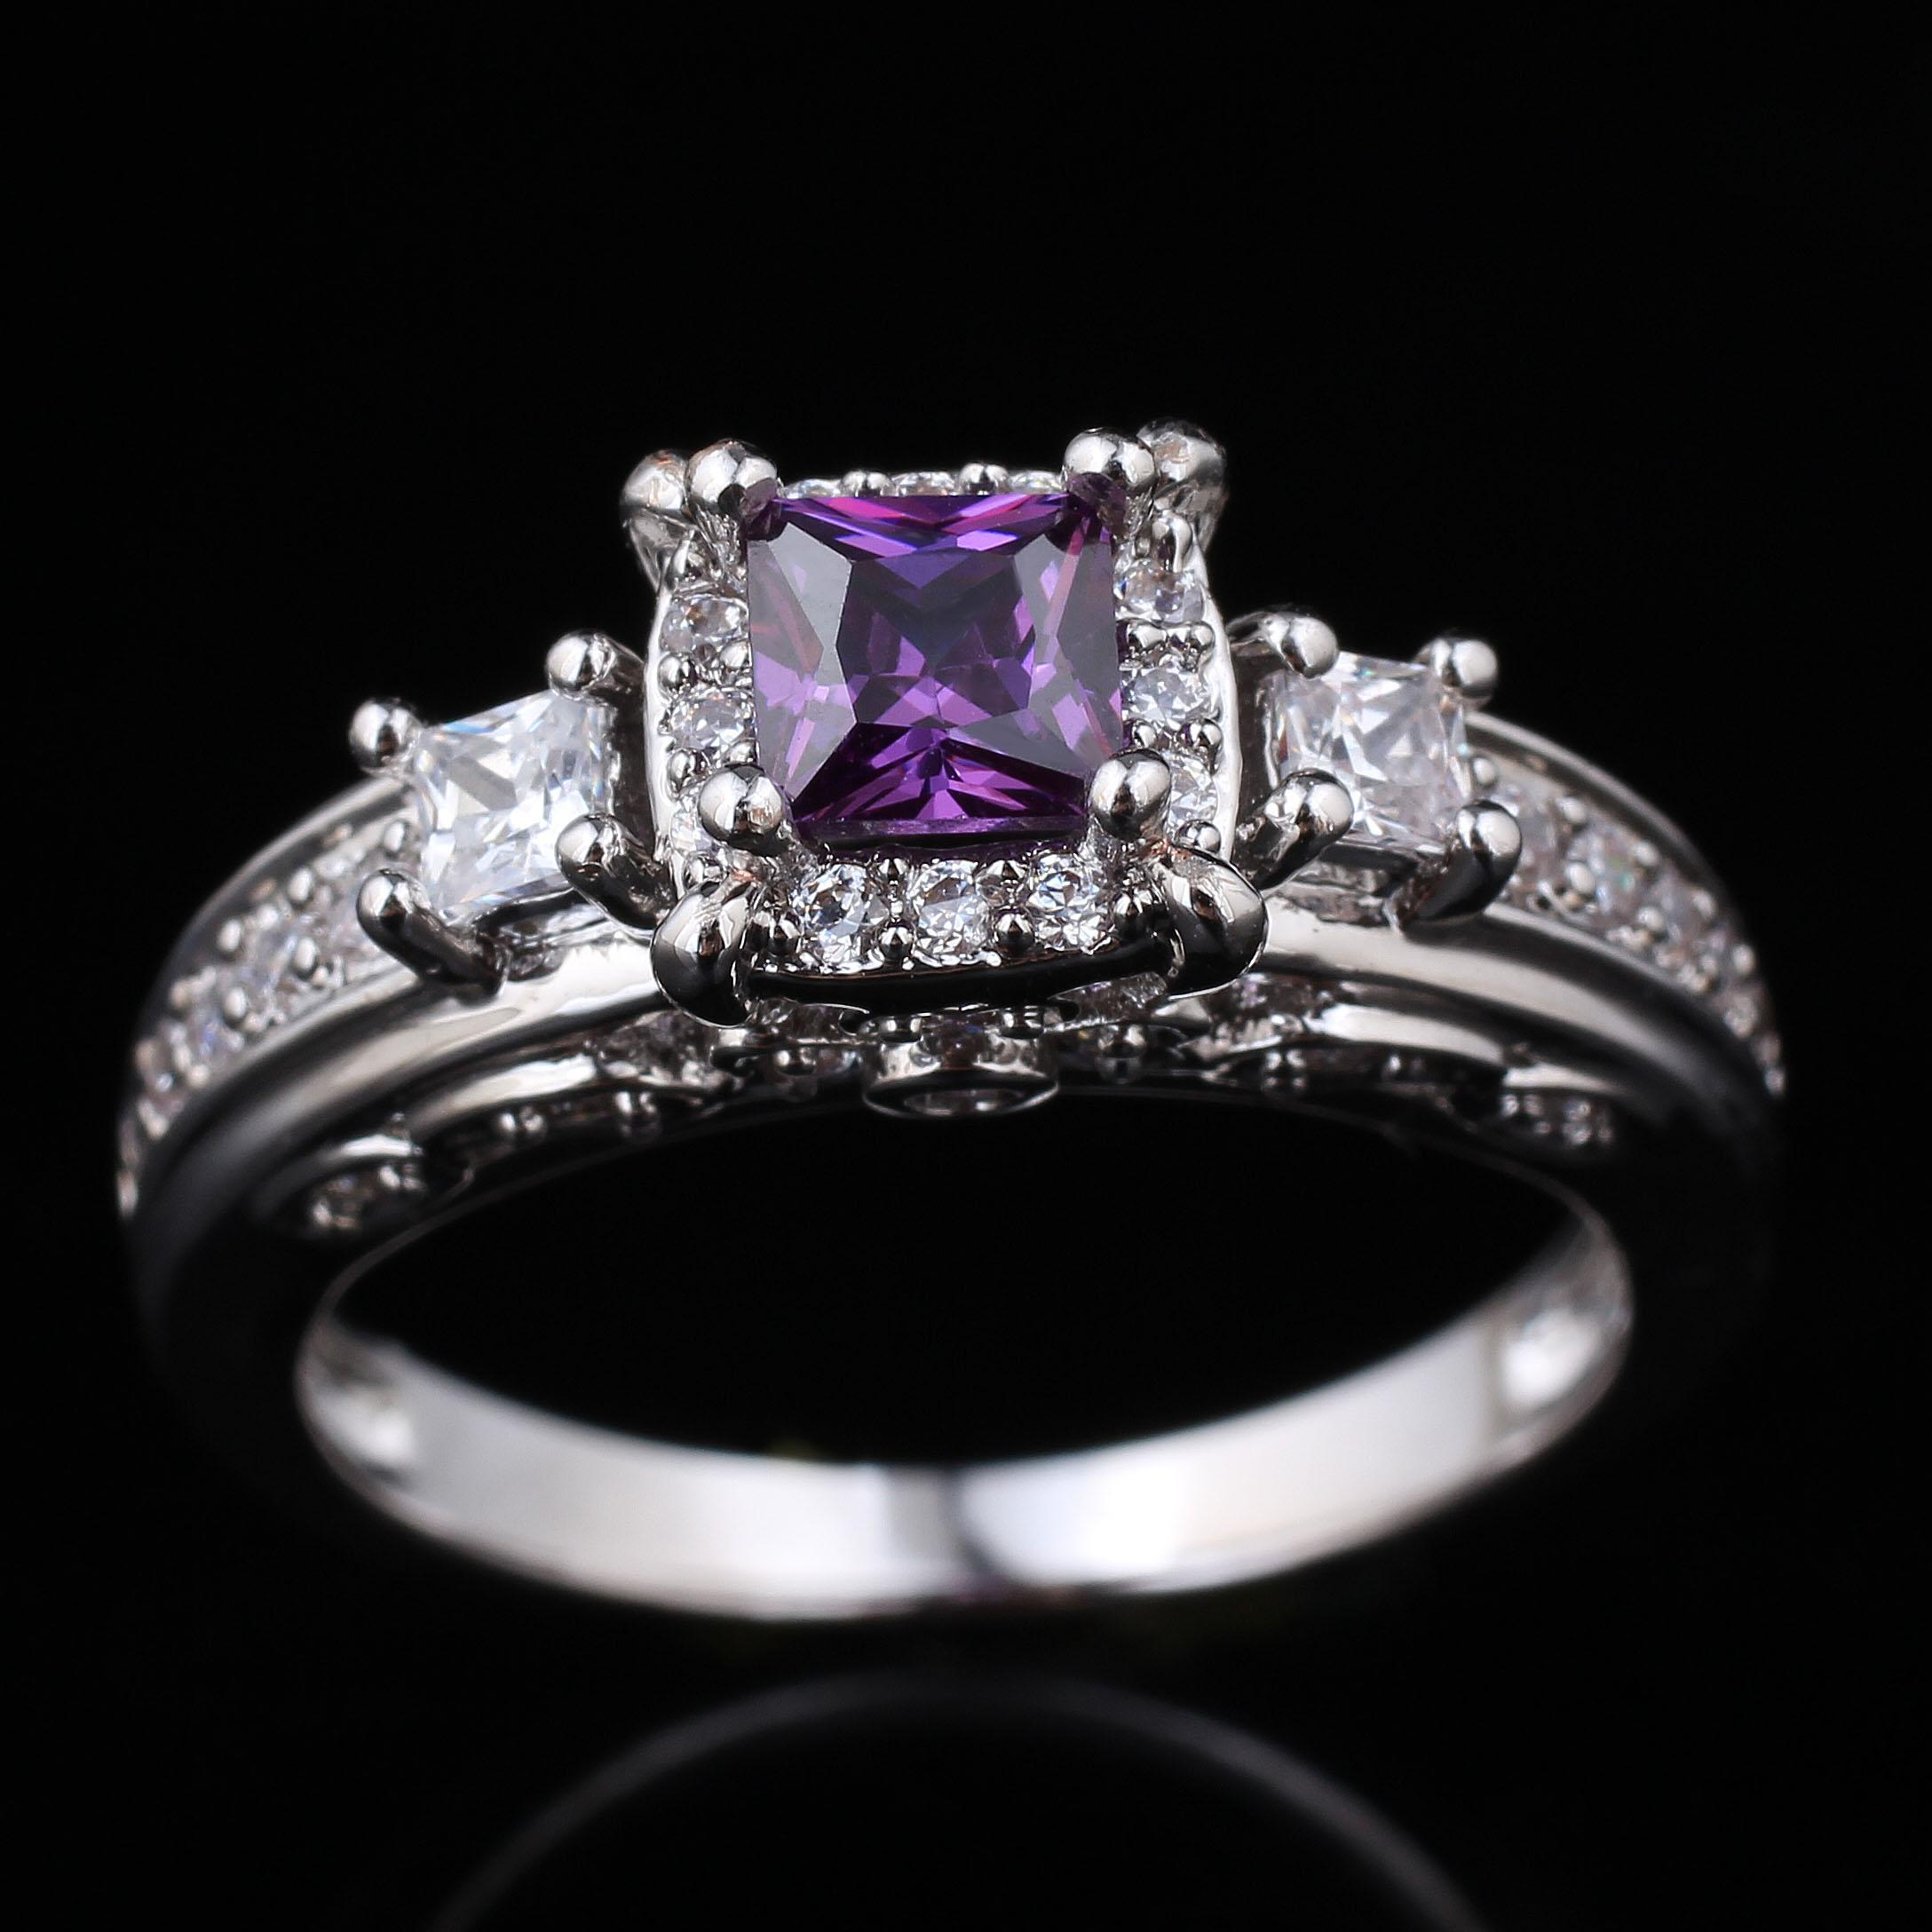 rings florida engagement vintage htm stone and from purple in knox bands wedding sarasota